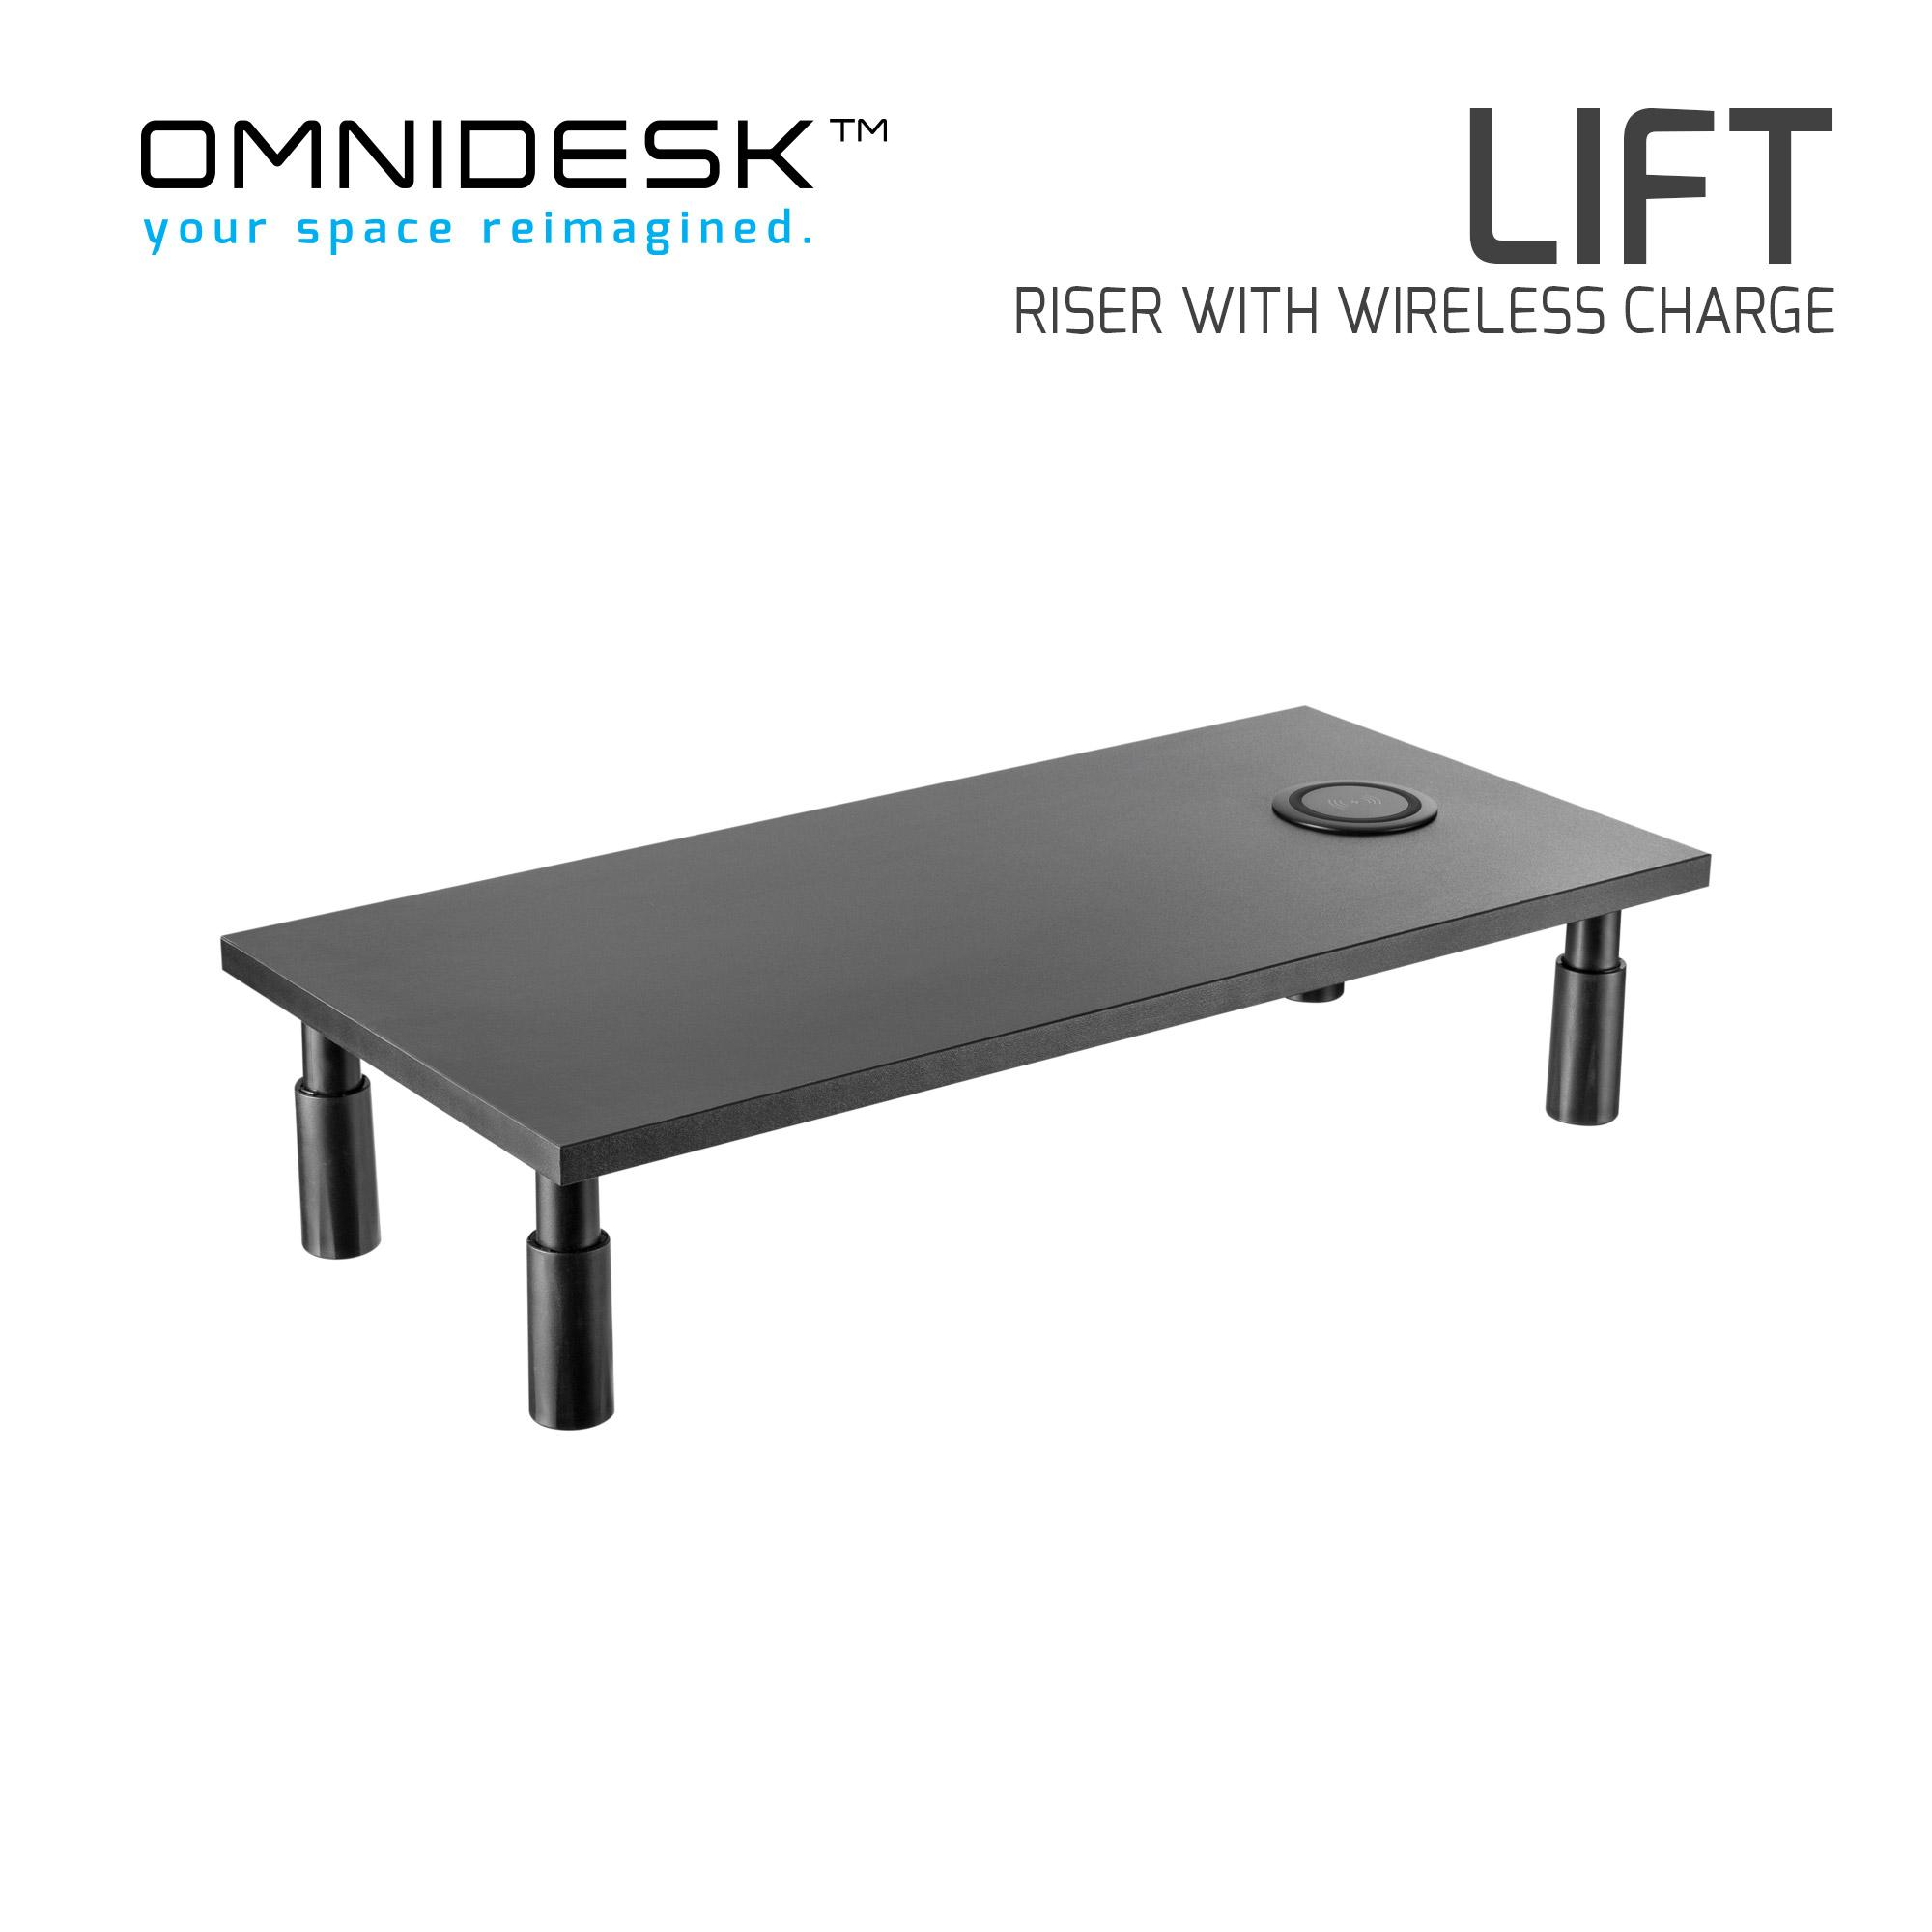 Omnidesk Lift - Riser with Wireless Charging